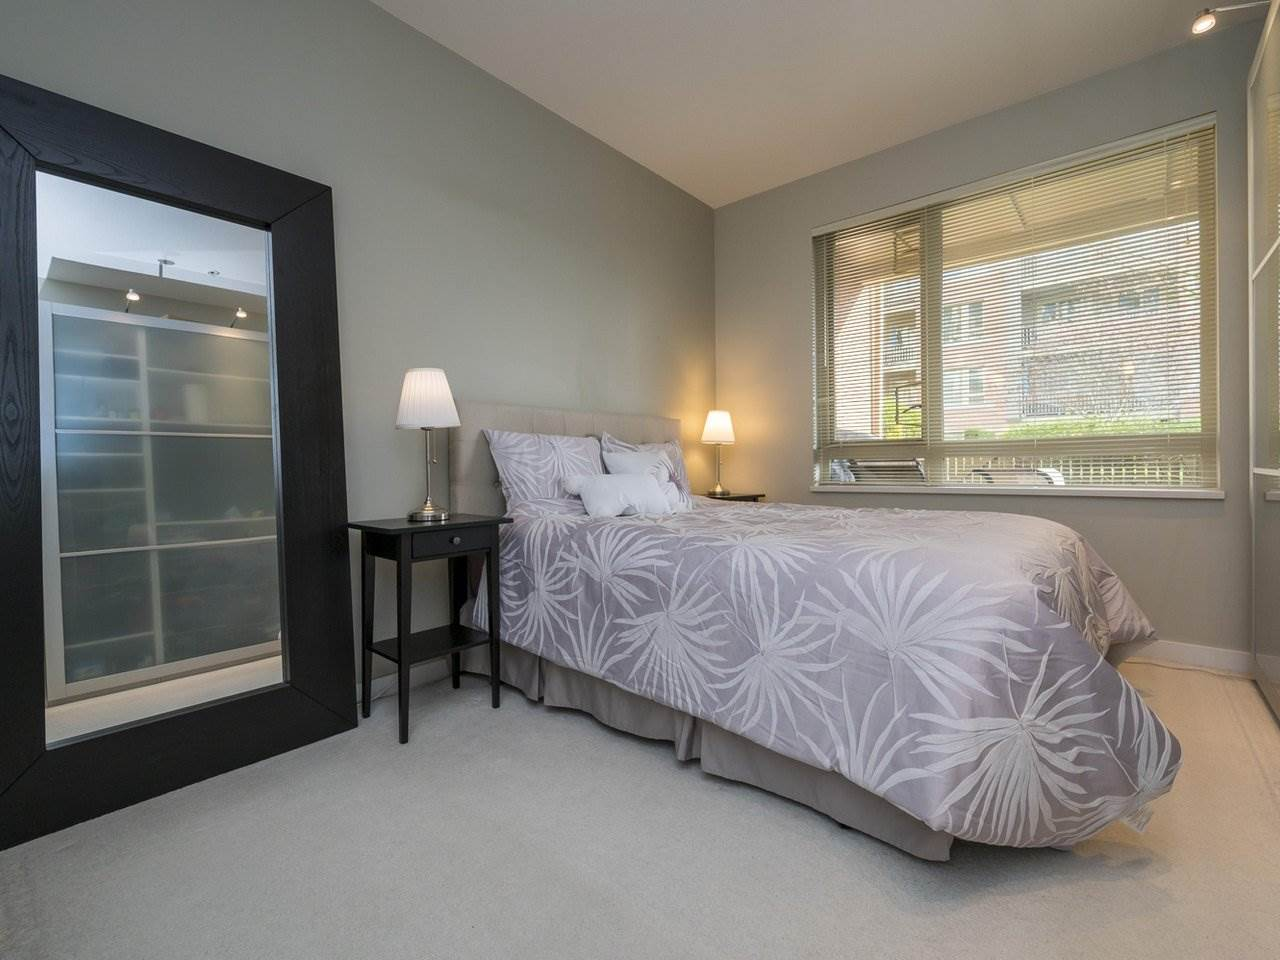 104 119 W 22ND STREET - Central Lonsdale Apartment/Condo for sale, 2 Bedrooms (R2528137) - #13